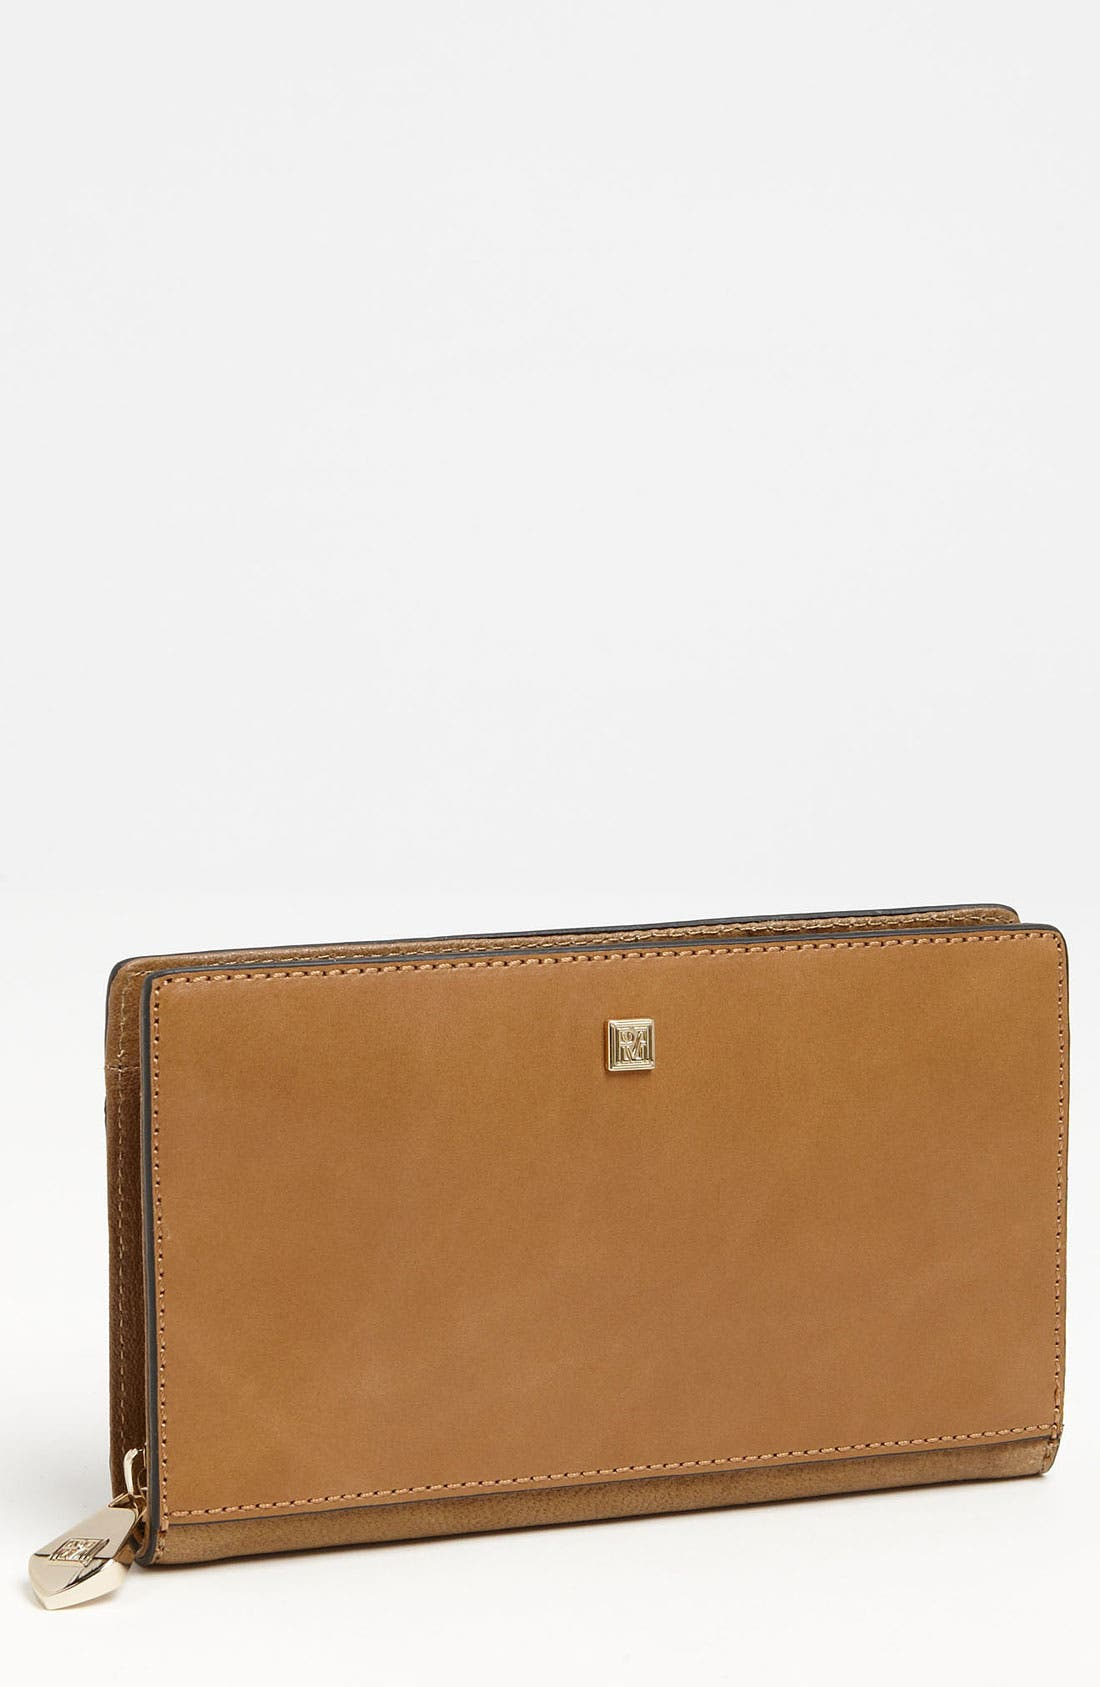 Main Image - Pour la Victoire 'Yves' Zip Around Wallet